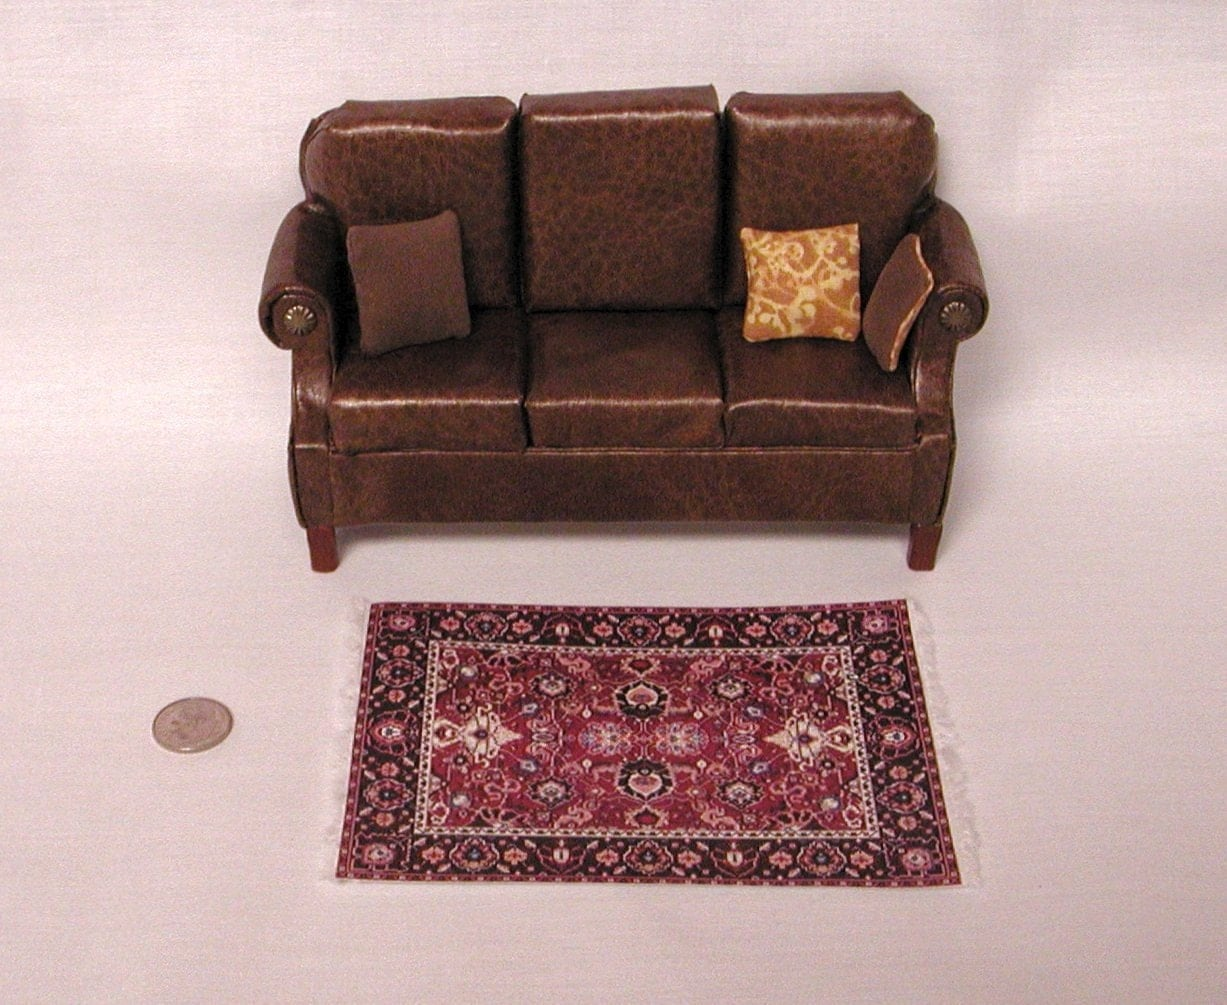 Sale priced traditional brown leather sofa 3 for Traditional leather sofas sale